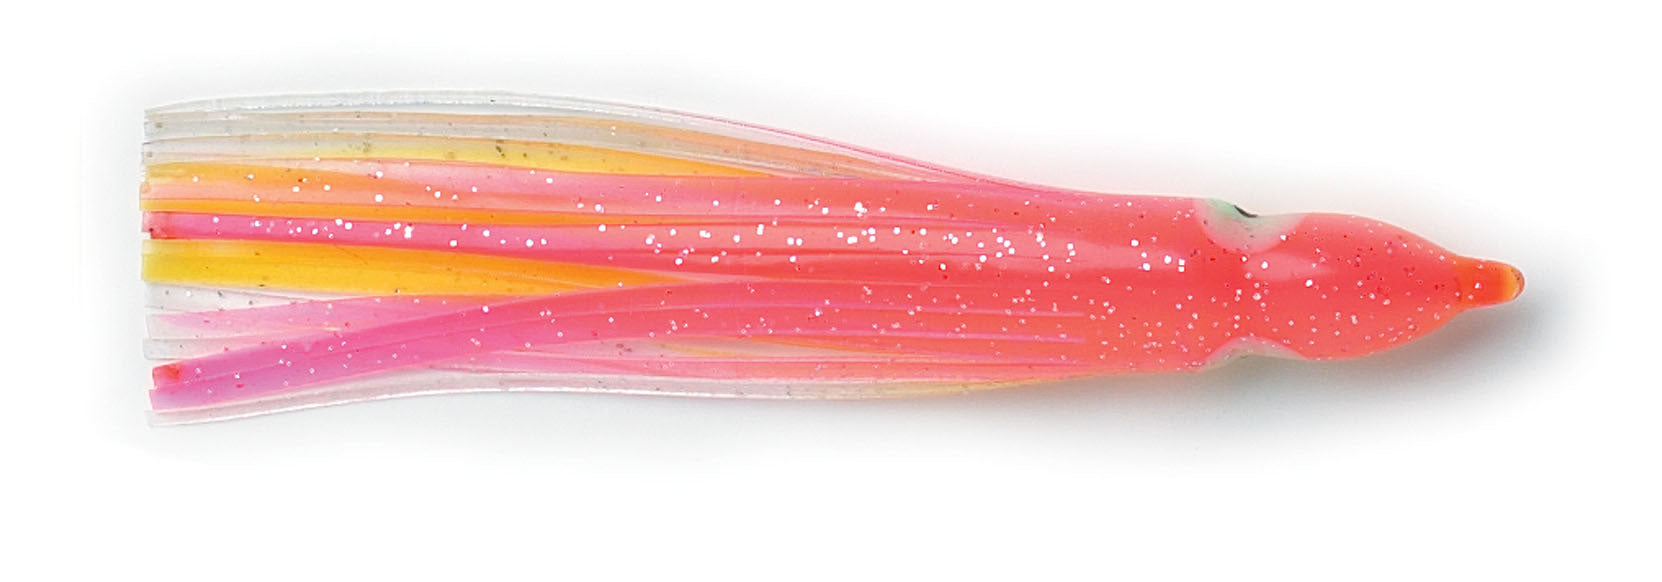 "Sunrise Squids 4.5"" - P-Line"